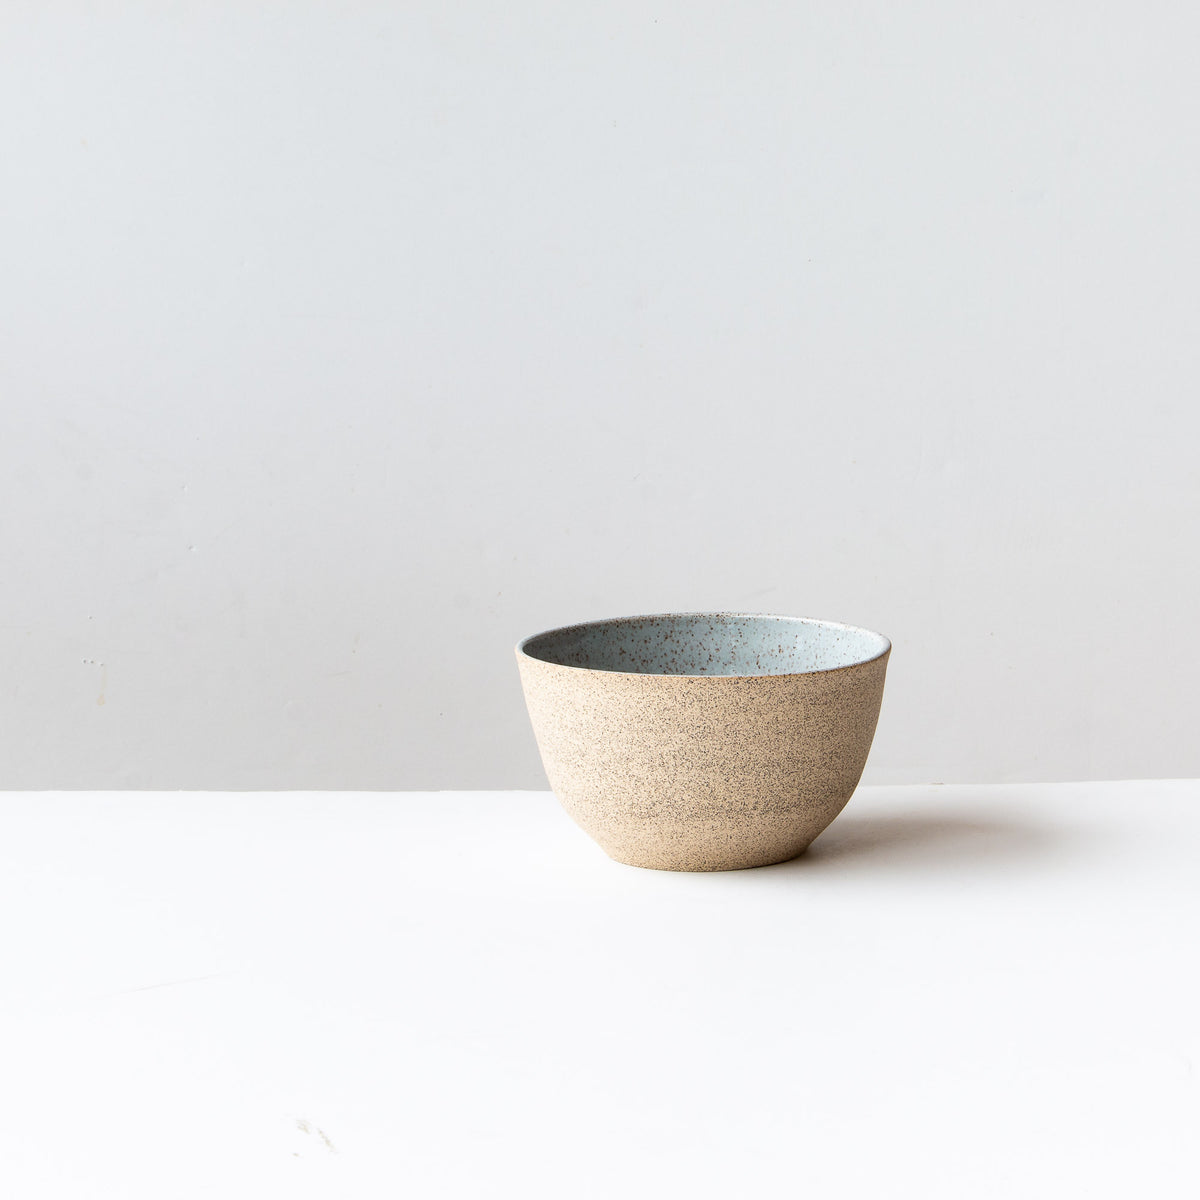 Speckled Stoneware Bowl - Pale Blue Glaze - Sold by Chic & Basta